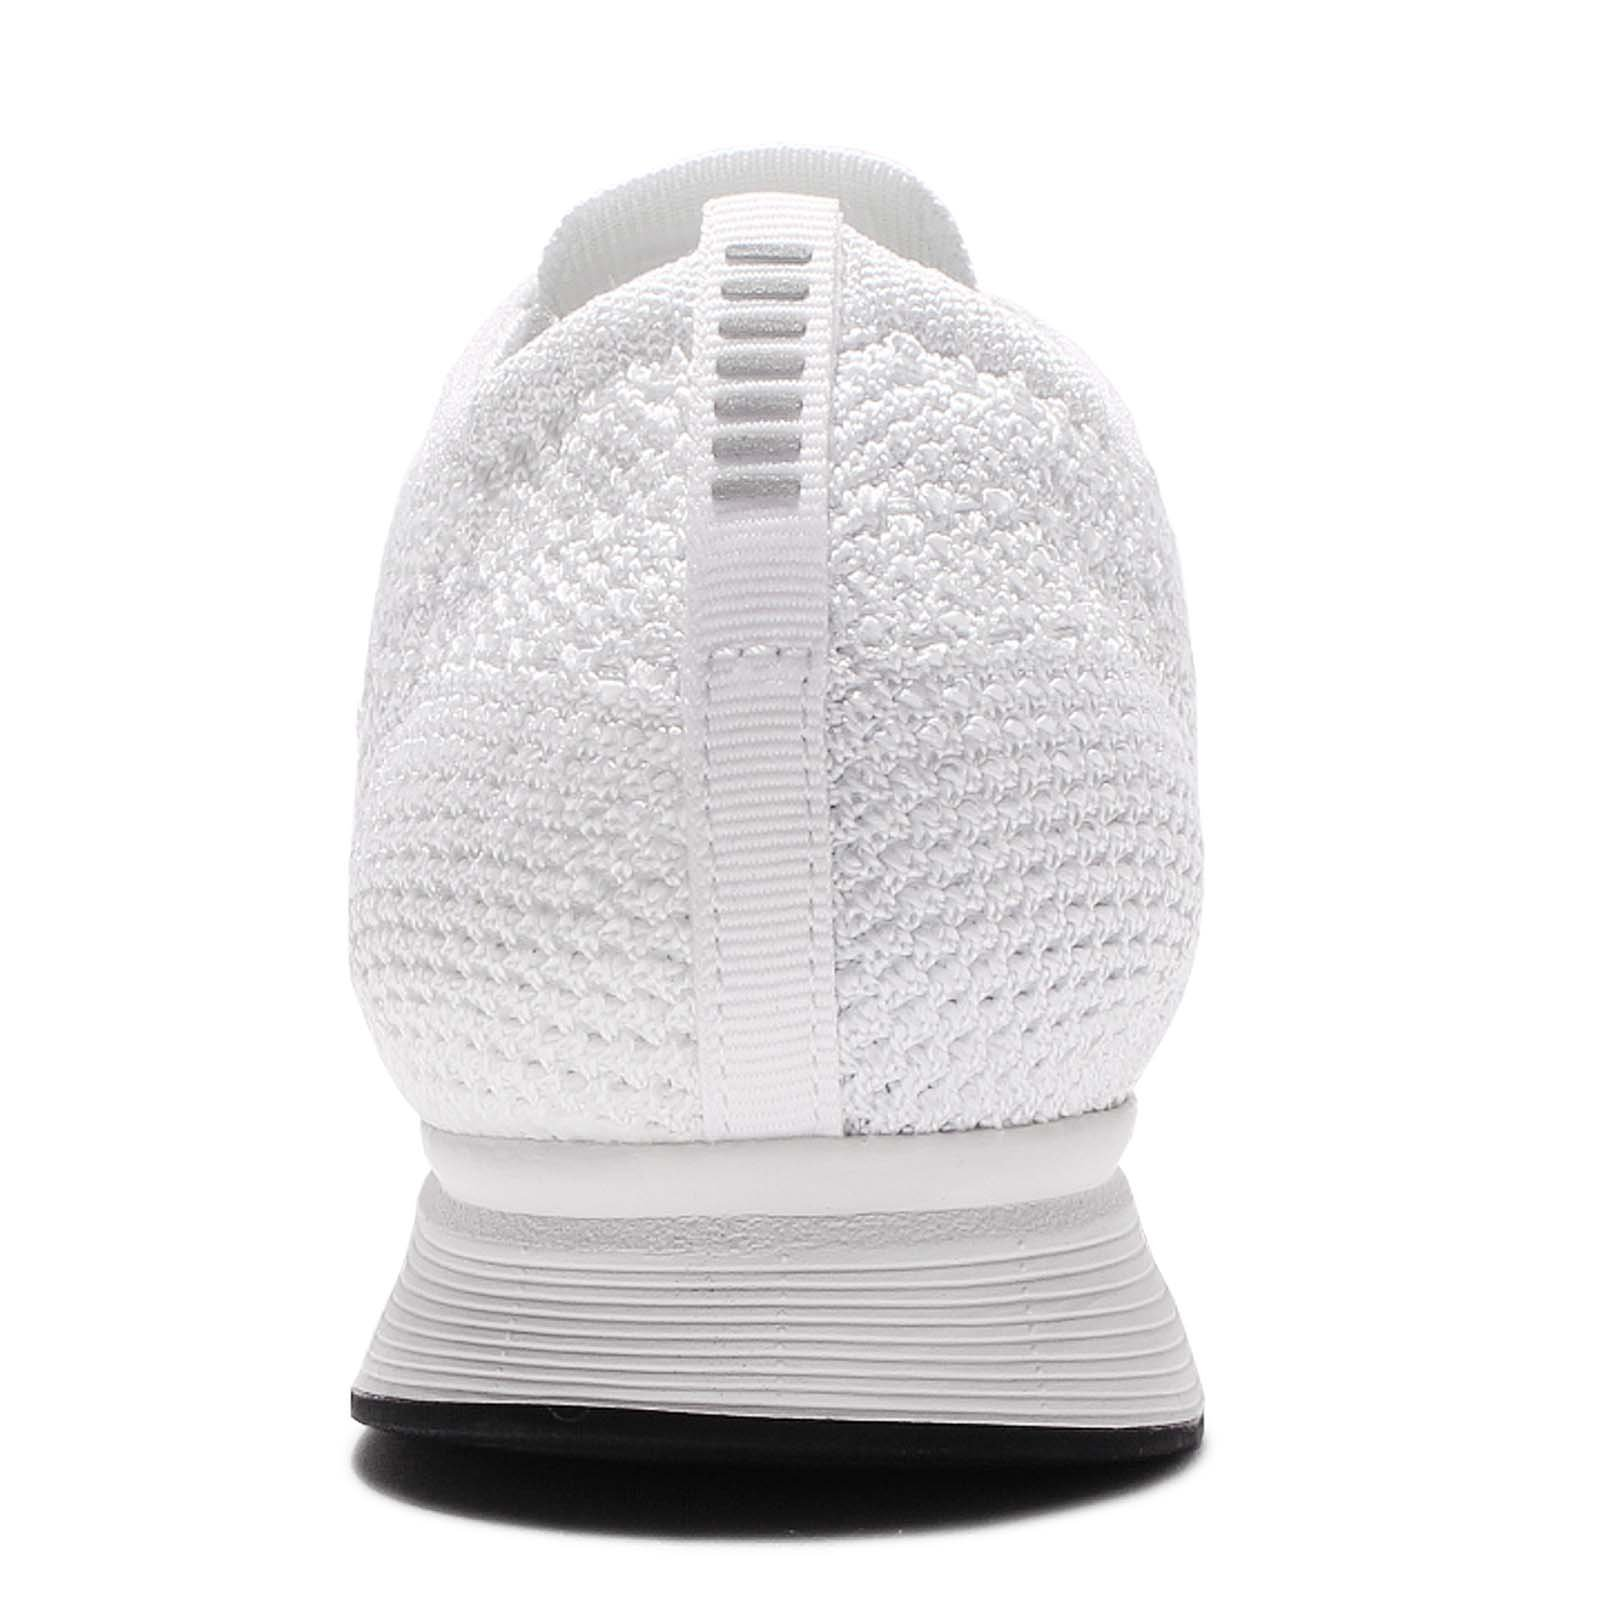 NIKE Men Flyknit Racer Running (White/White-Sail-Pure Platinum) Size 11.0 US